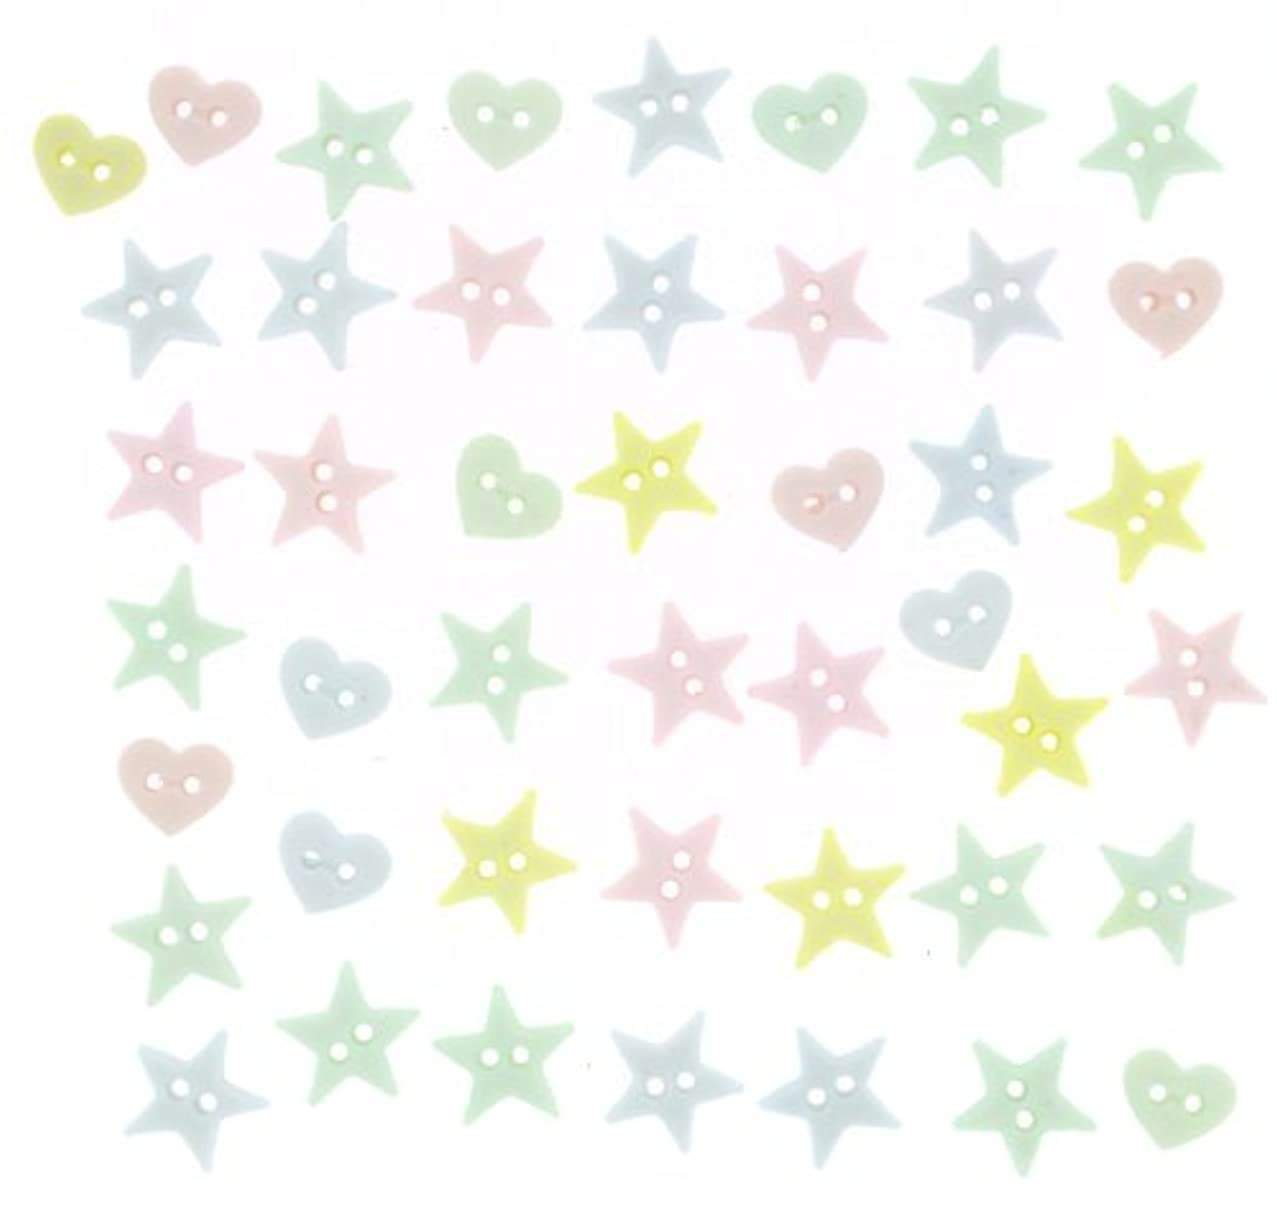 Dress It Up 3013 Micro Innocence Mix Embellishment for Crafts, Mini